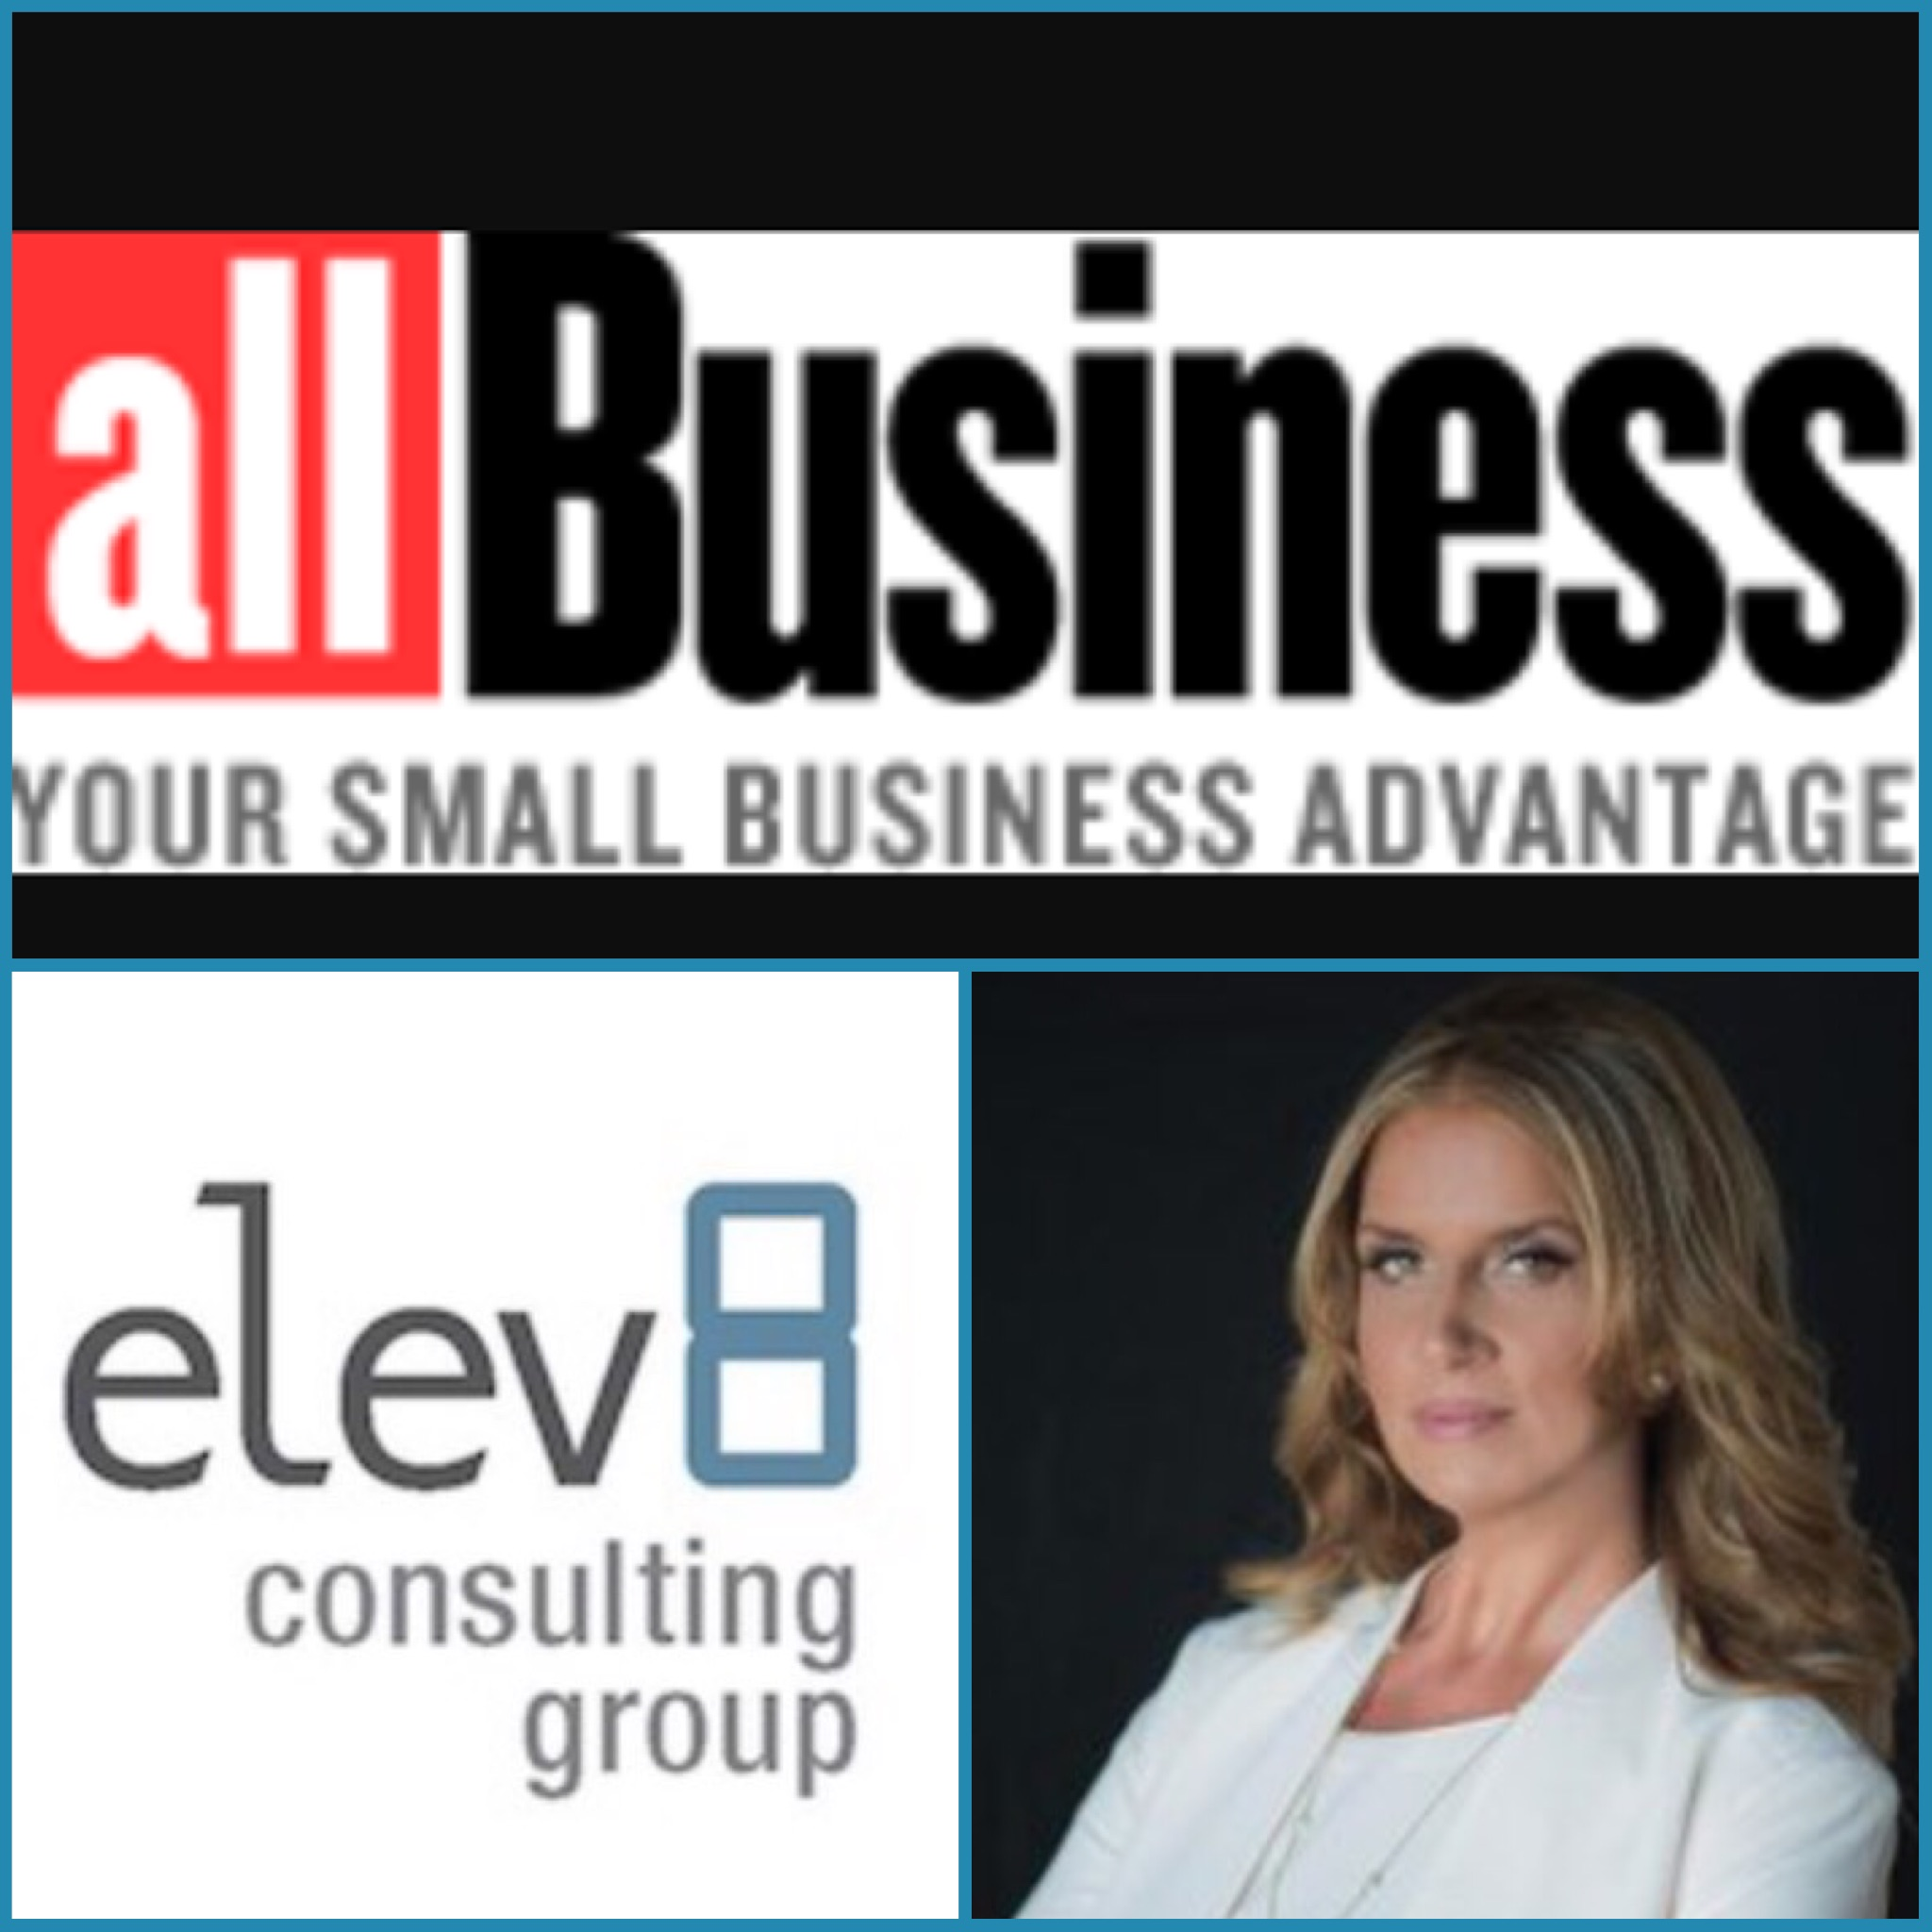 Elev8 Consulting Group All Business Angela Delmedico